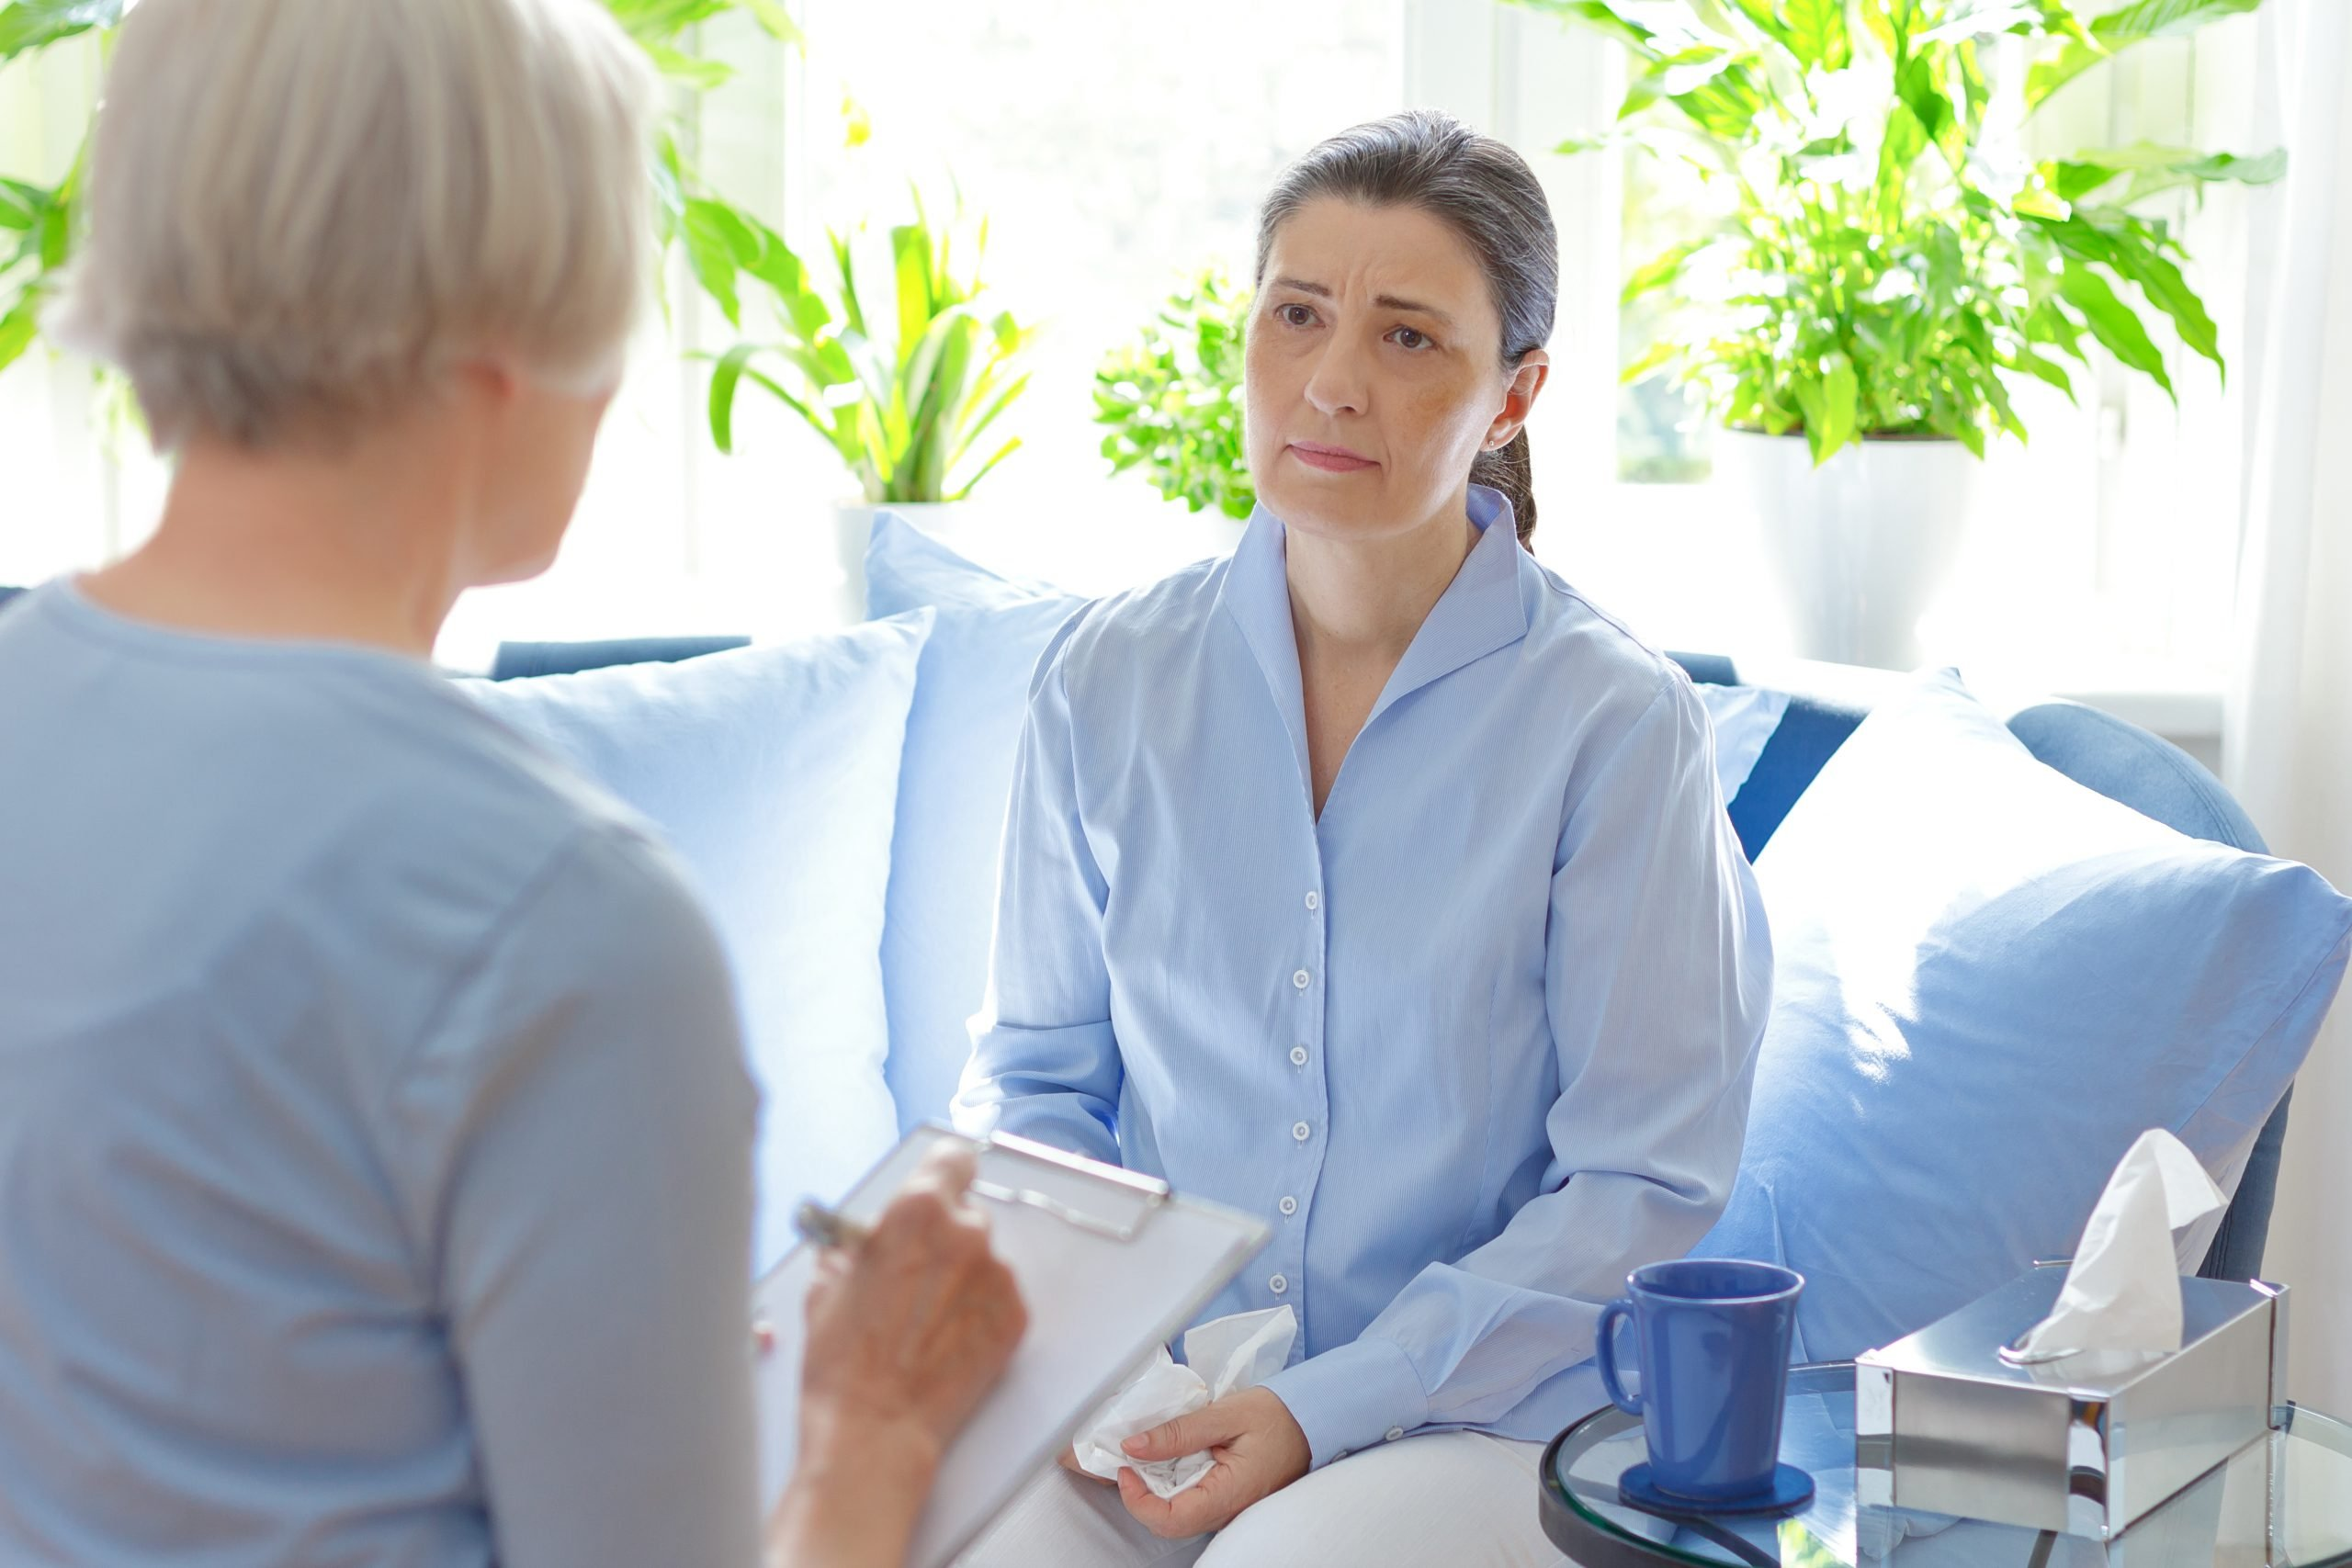 Therapist talking to client, client looks unhappy